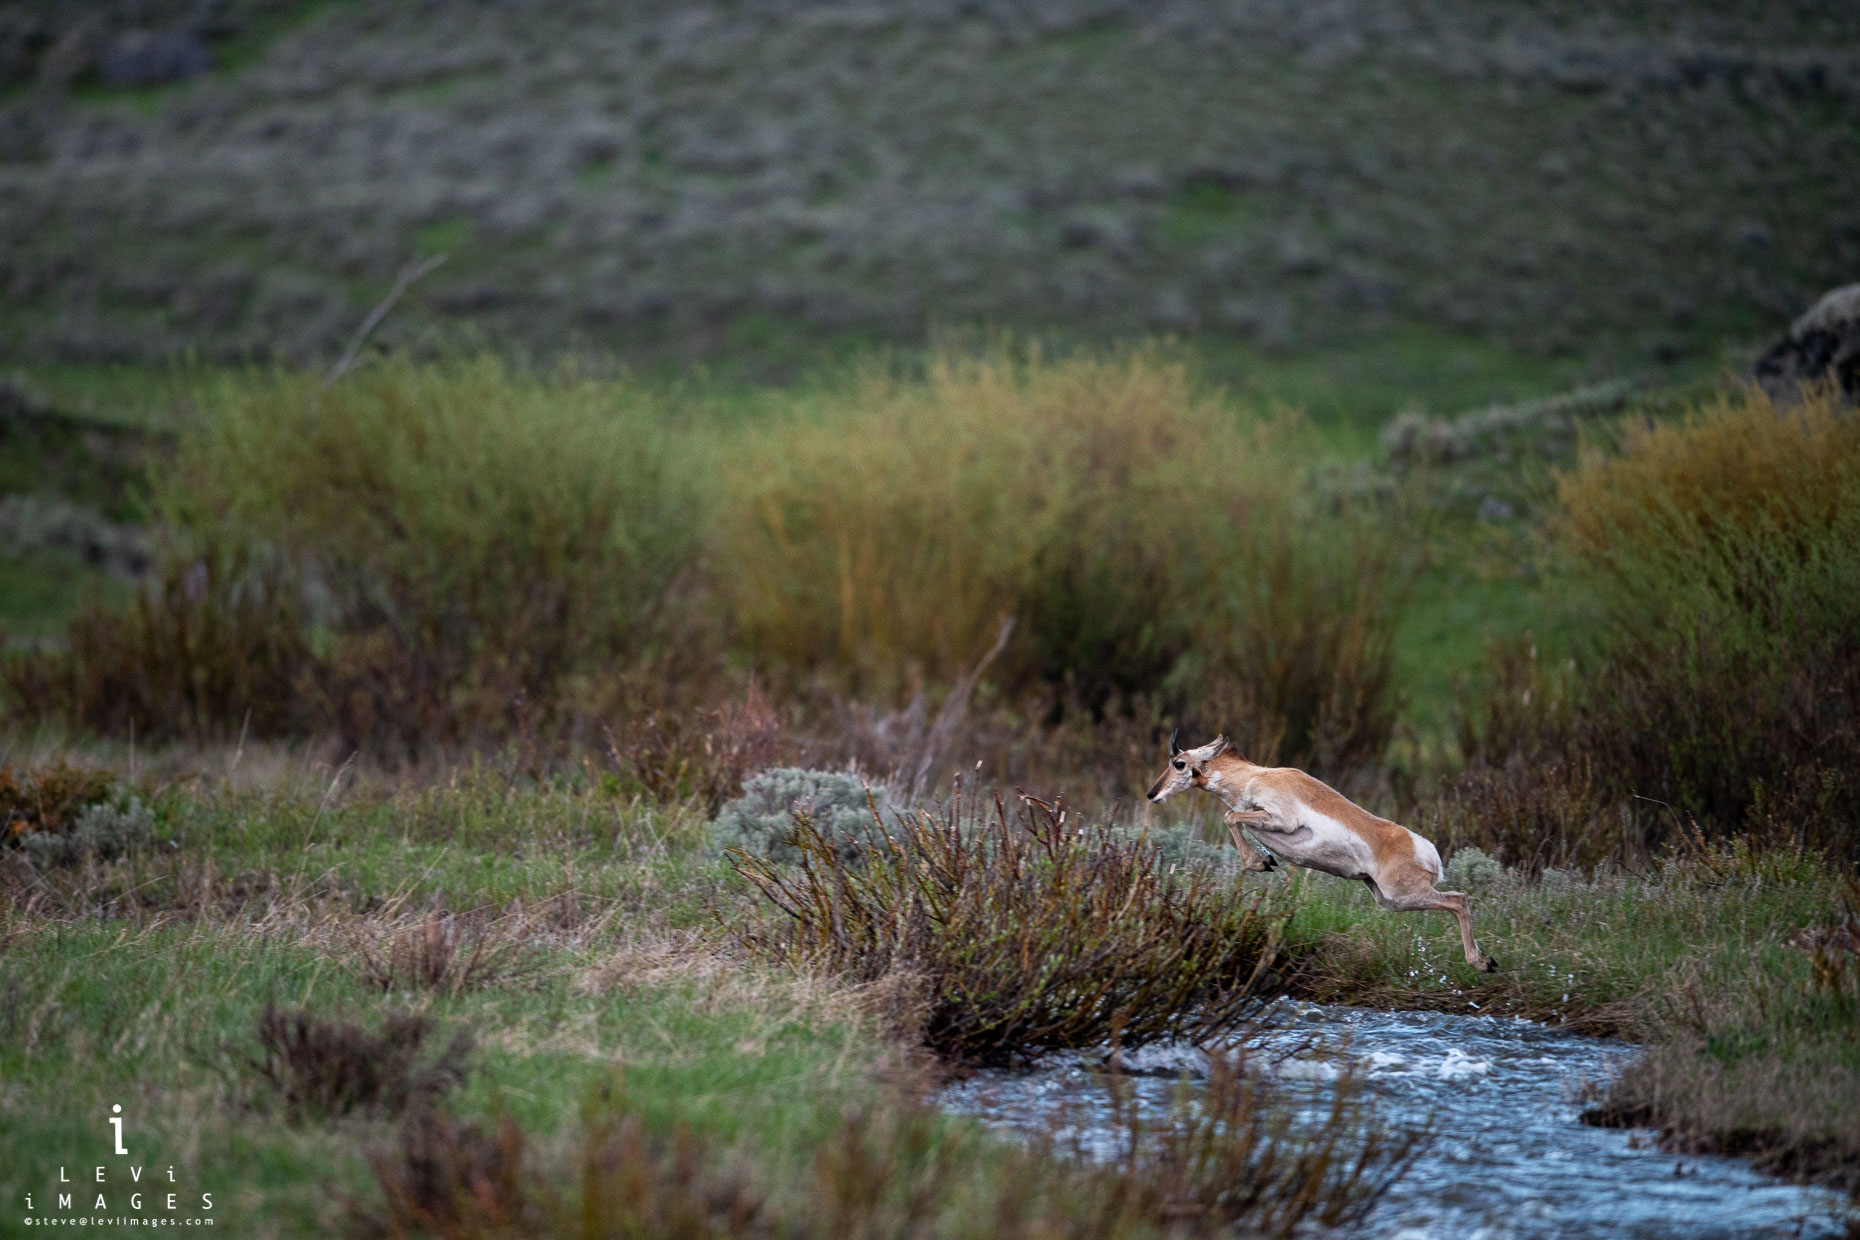 Pronghorn (Antilocapra americana) sheep leaping across stream. Yellowstone National Park, Wyoming